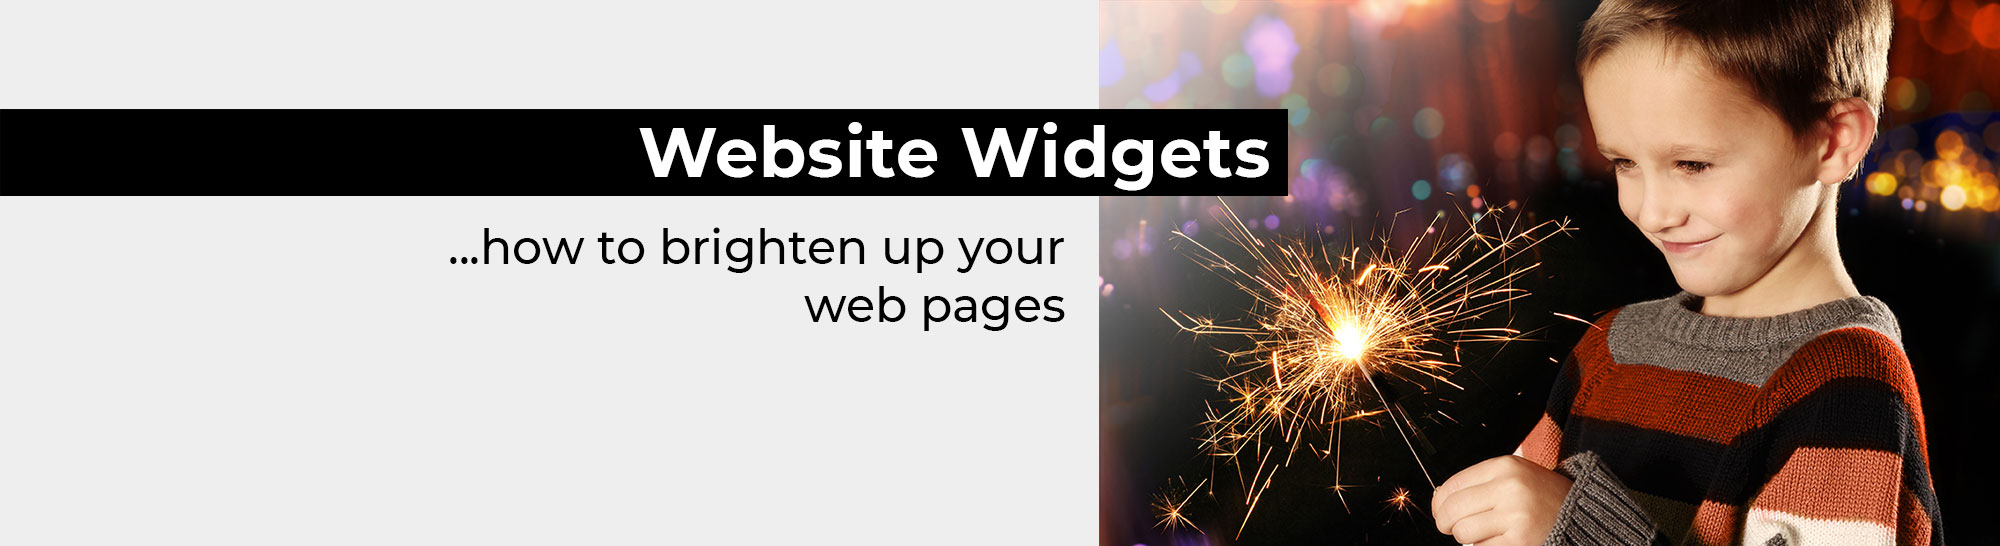 Website Widgets